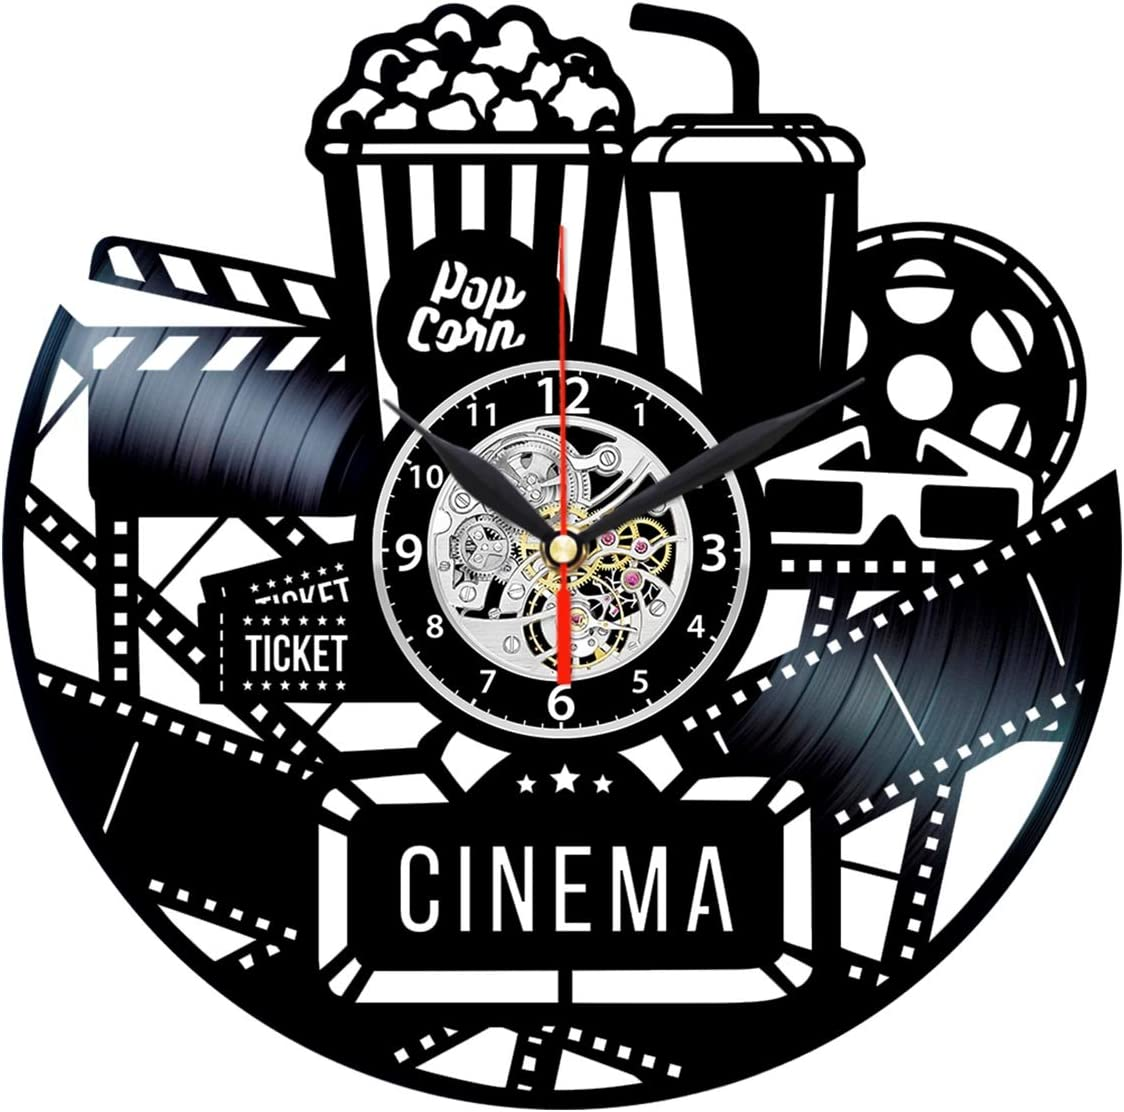 Cinema Clock - Vinyl Record Wall Art - Movie Room Decor - Film Gifts for Men